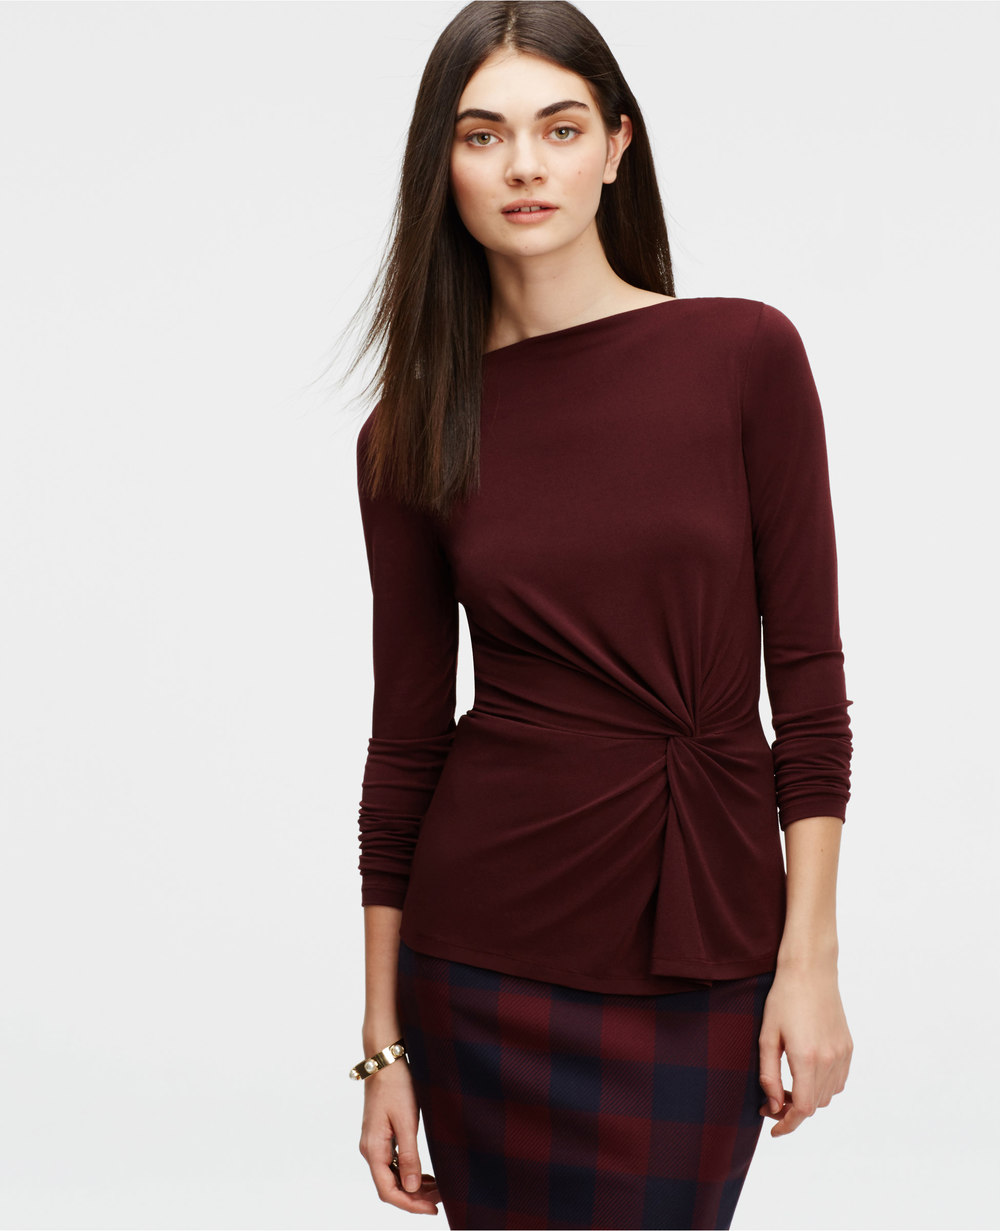 Knotted Crepe Top. Available in multiple colors. Ann Taylor. $59.